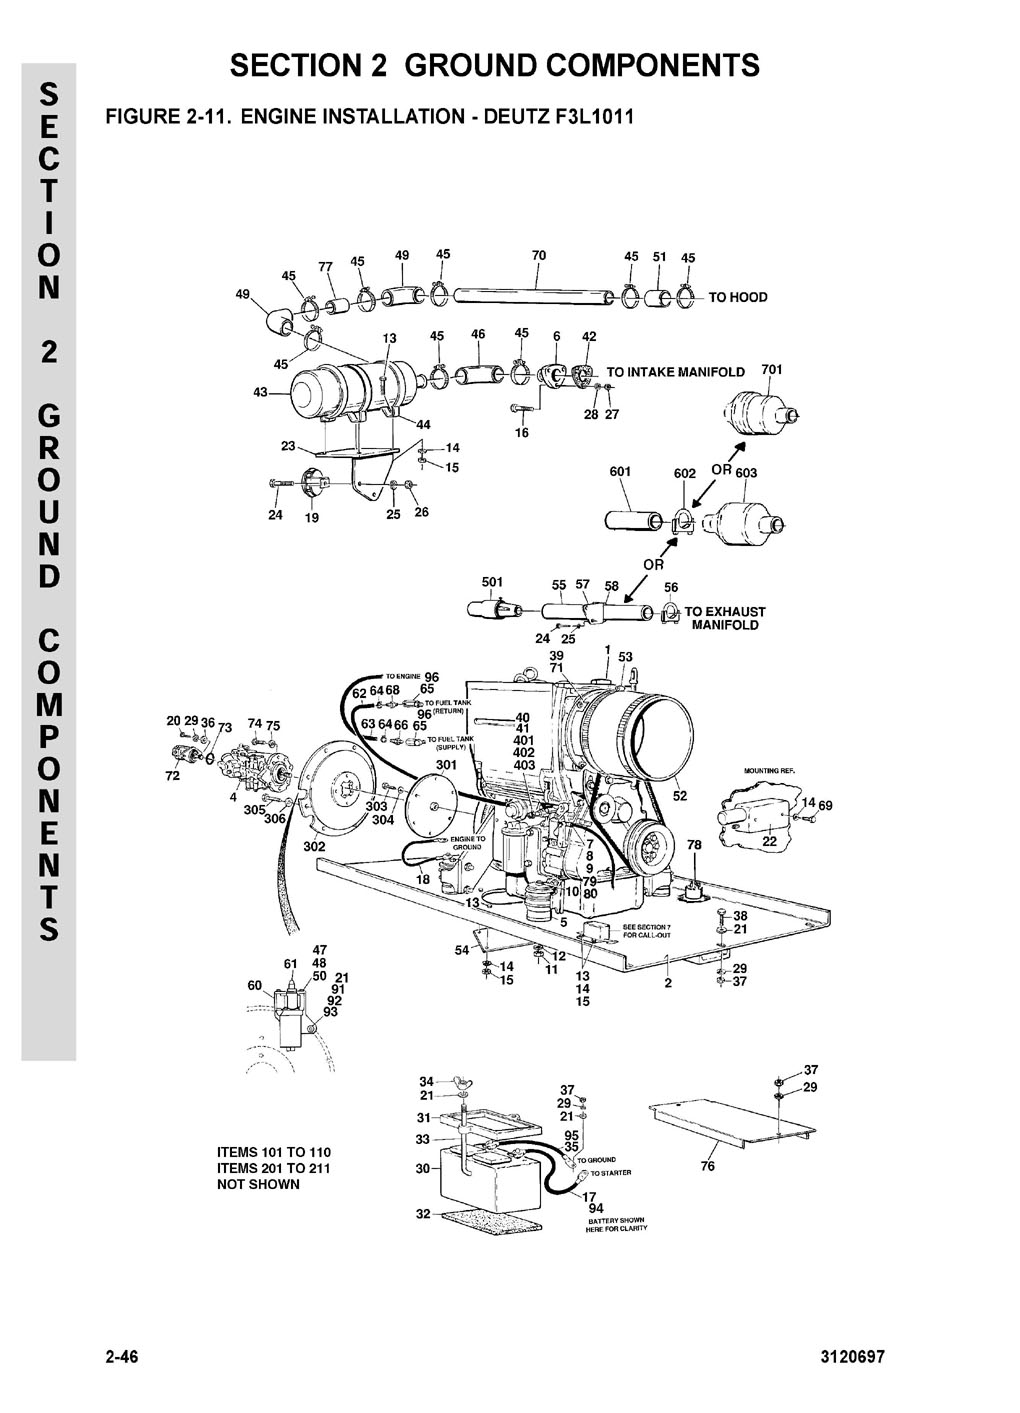 [QNCB_7524]  XW_3977] Deutz 1011 Engine Parts Diagram Together With Deutz Engine Parts  Free Diagram | Deutz Engine Schematics |  | Getap Isra Mohammedshrine Librar Wiring 101